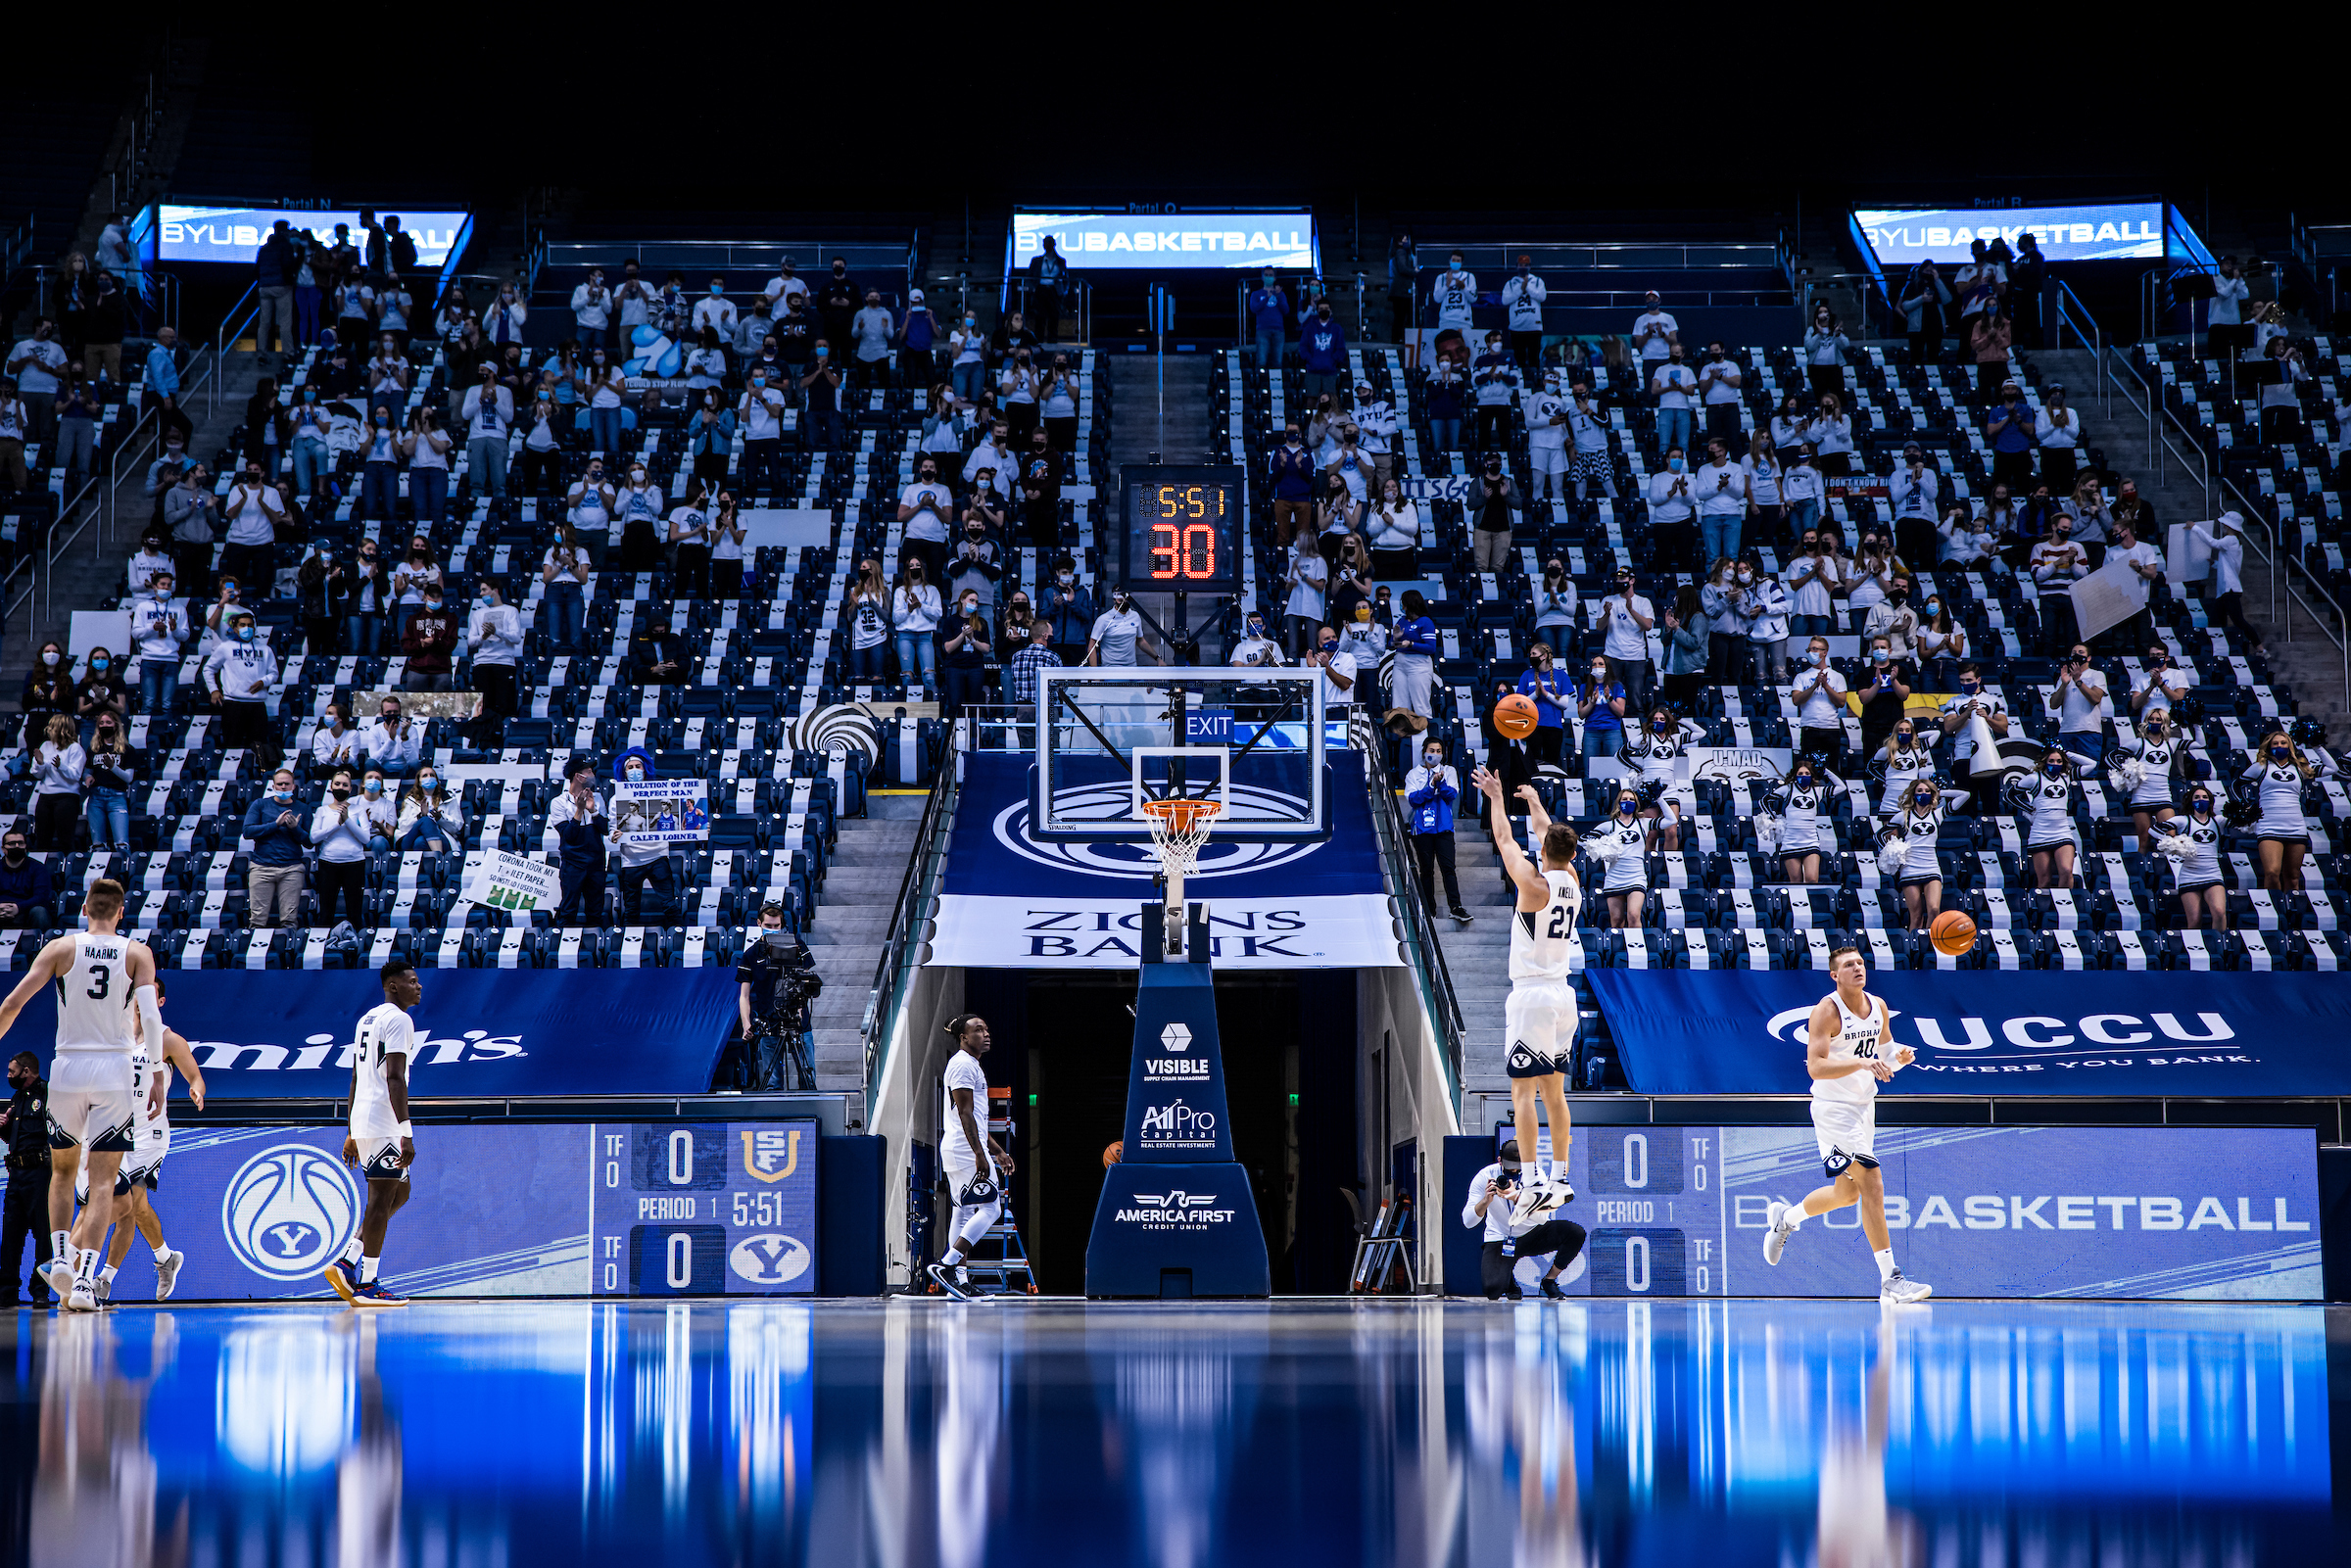 BYU players warm up prior to a game against San Francisco in the Marriott Center in Provo on Feb. 25, 2021.